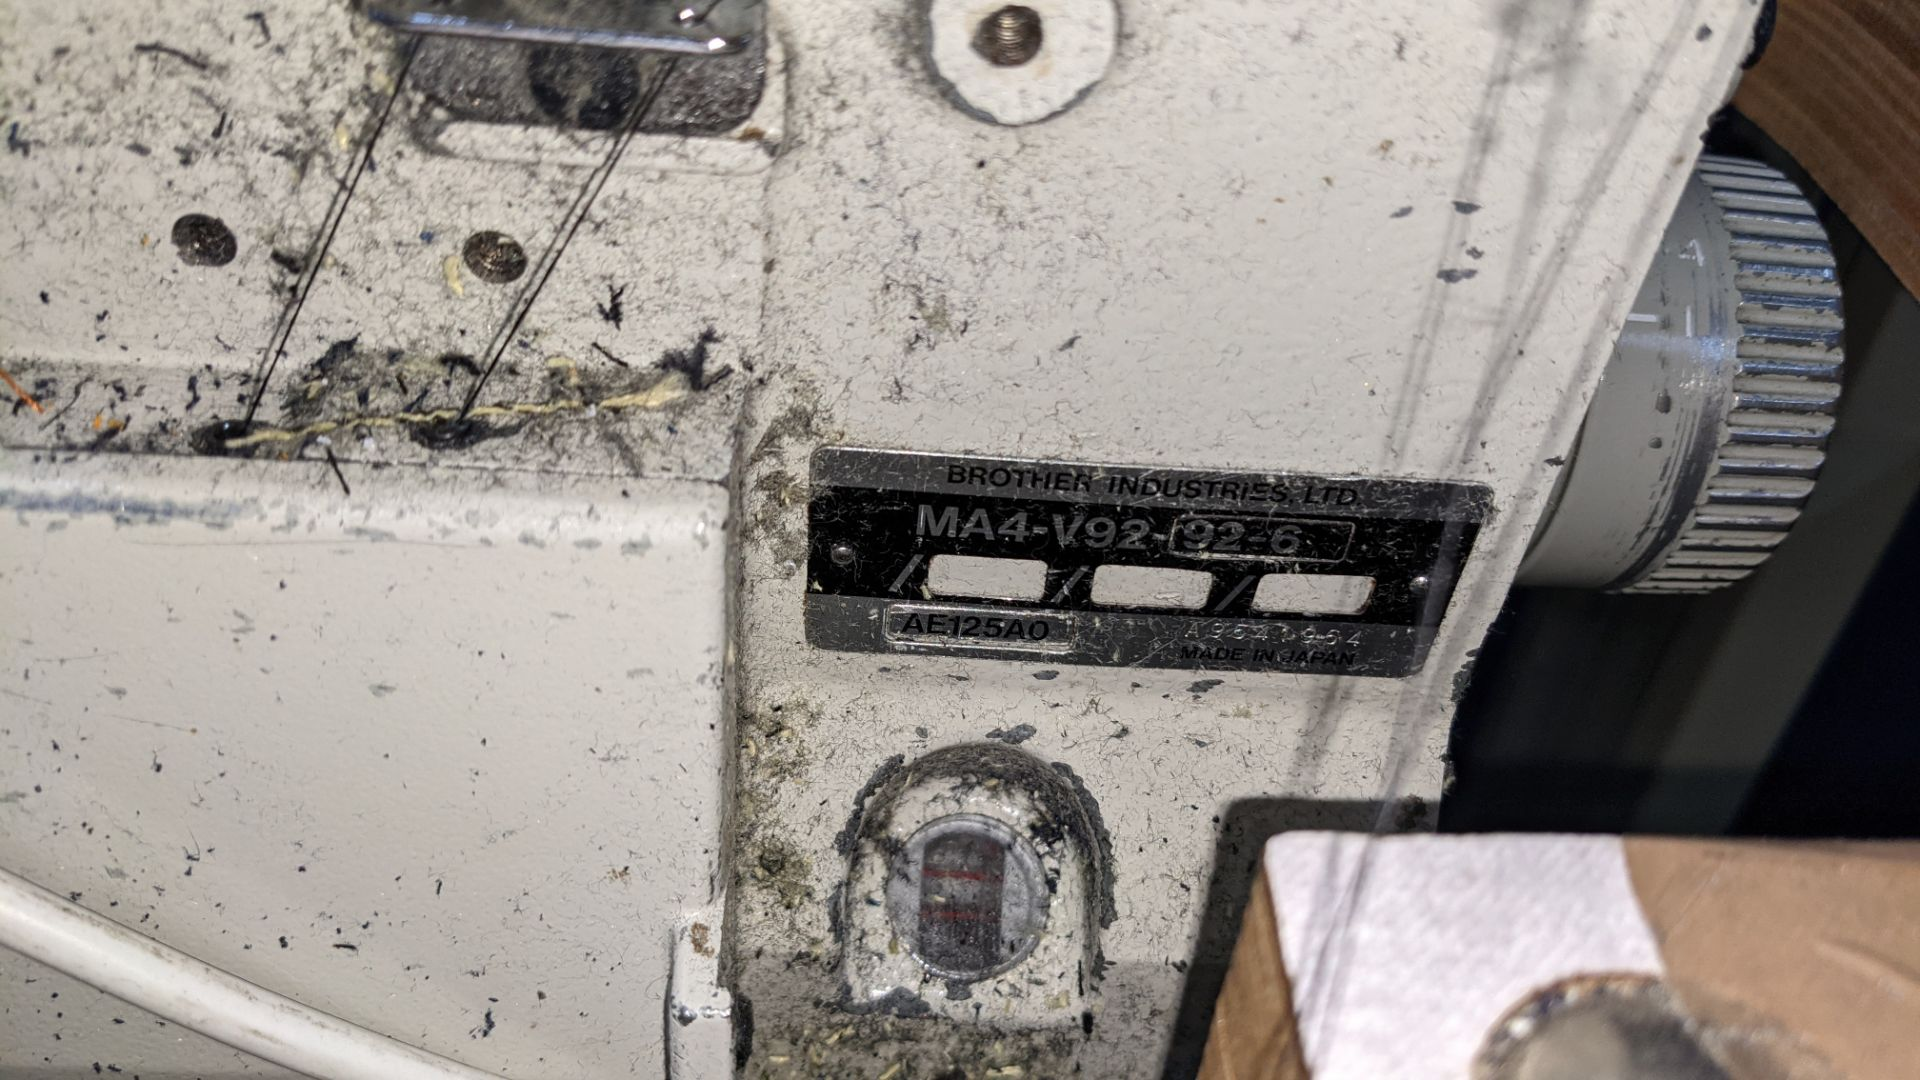 Brother overlocker model MA4-V92-92-6 - Image 10 of 21